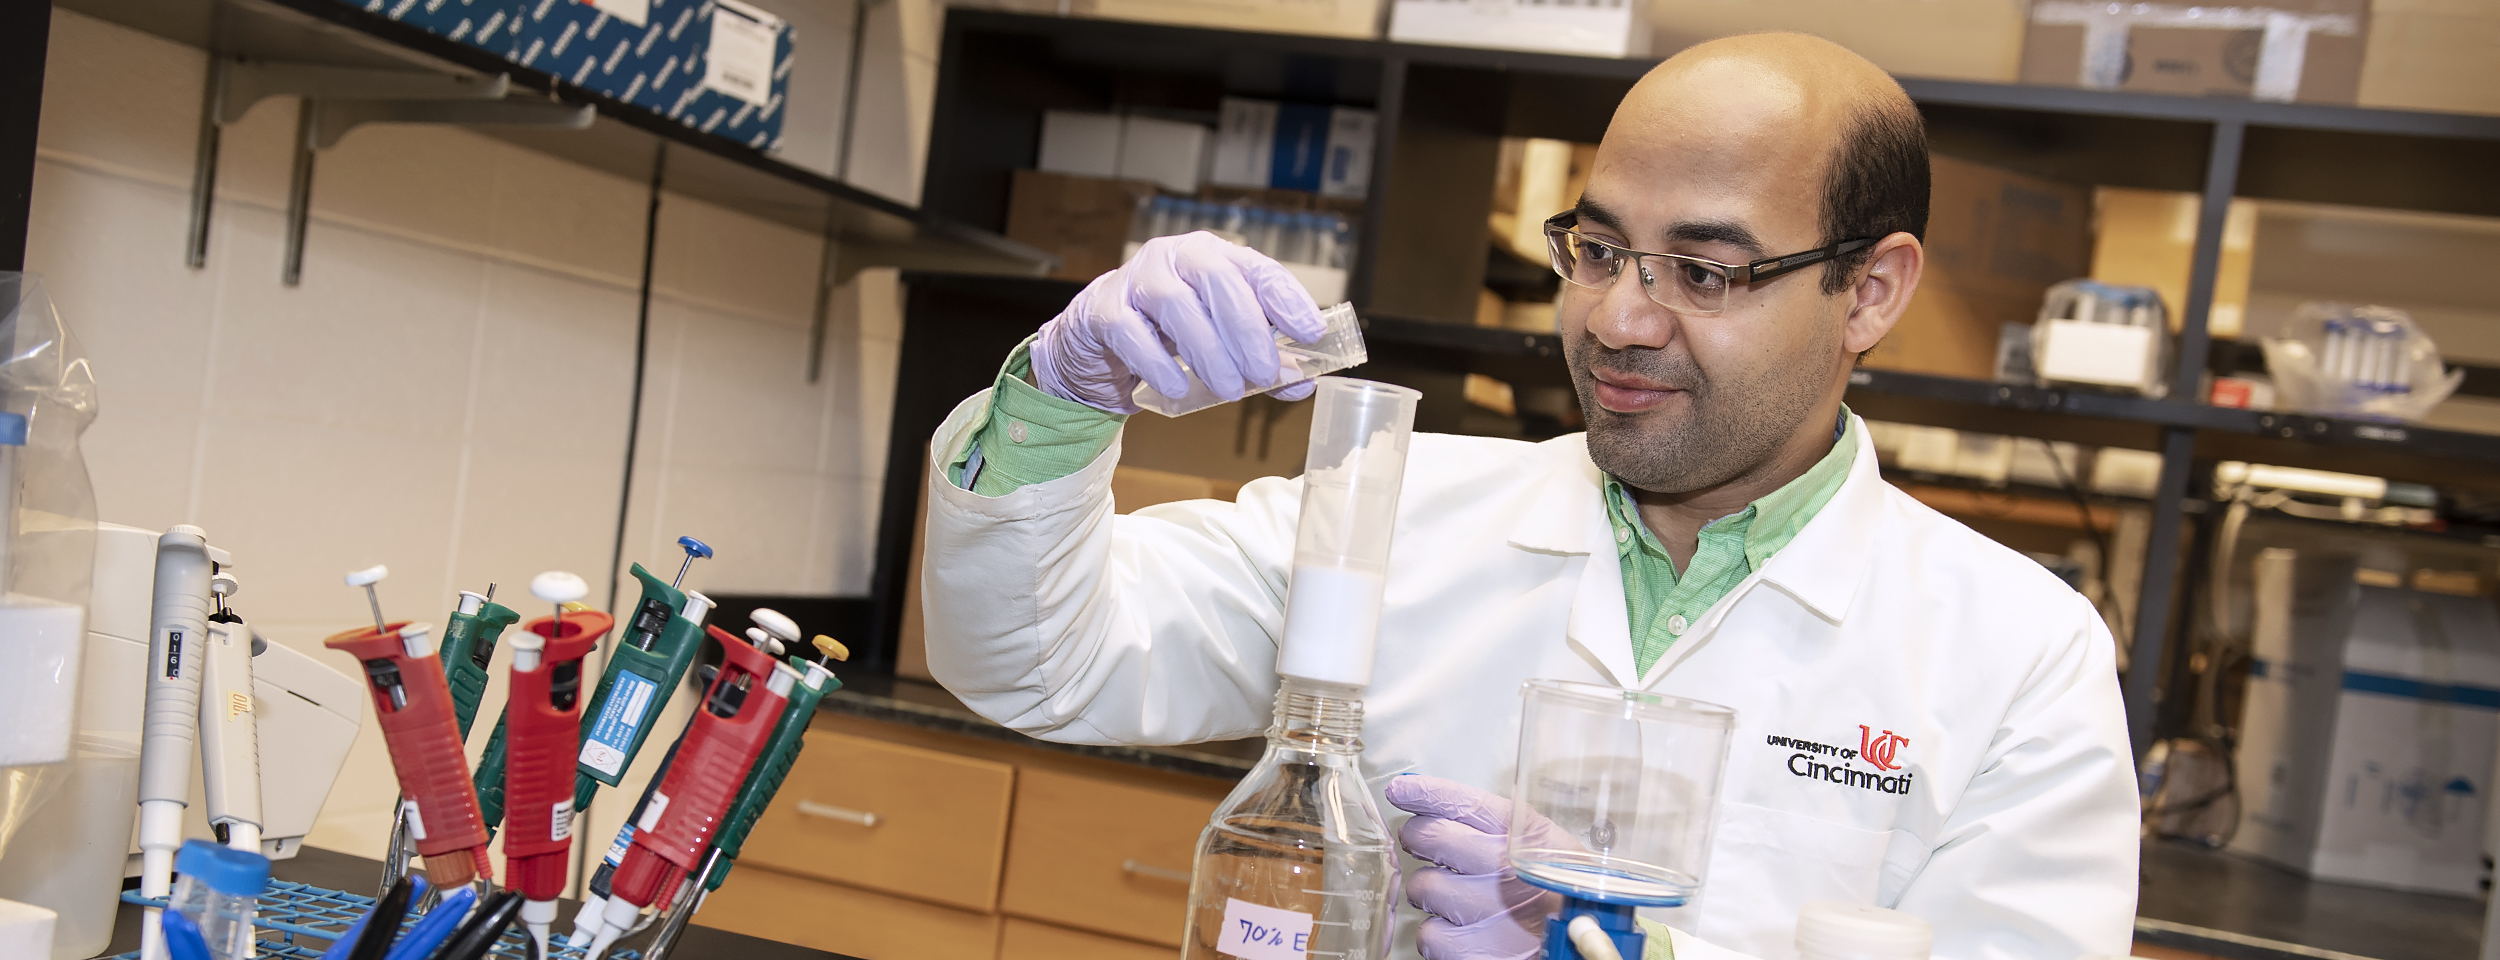 Helal Hetta, PhD, shown in a UC College of Medicine lab.